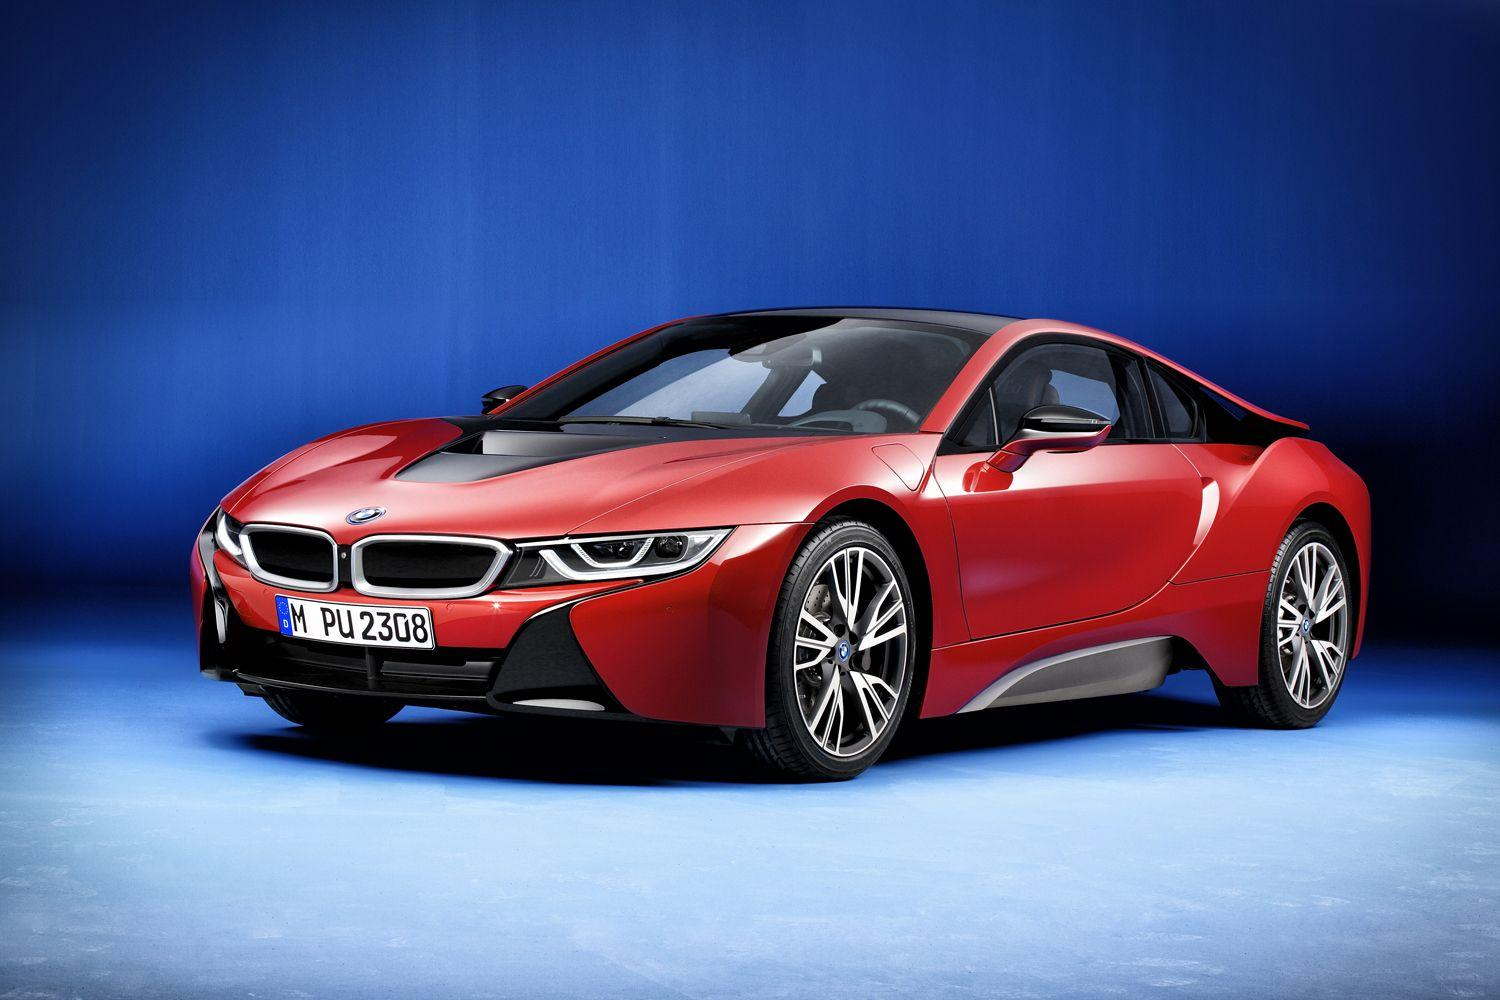 Has the updated version of BMW's futuristic i8 been hiding in